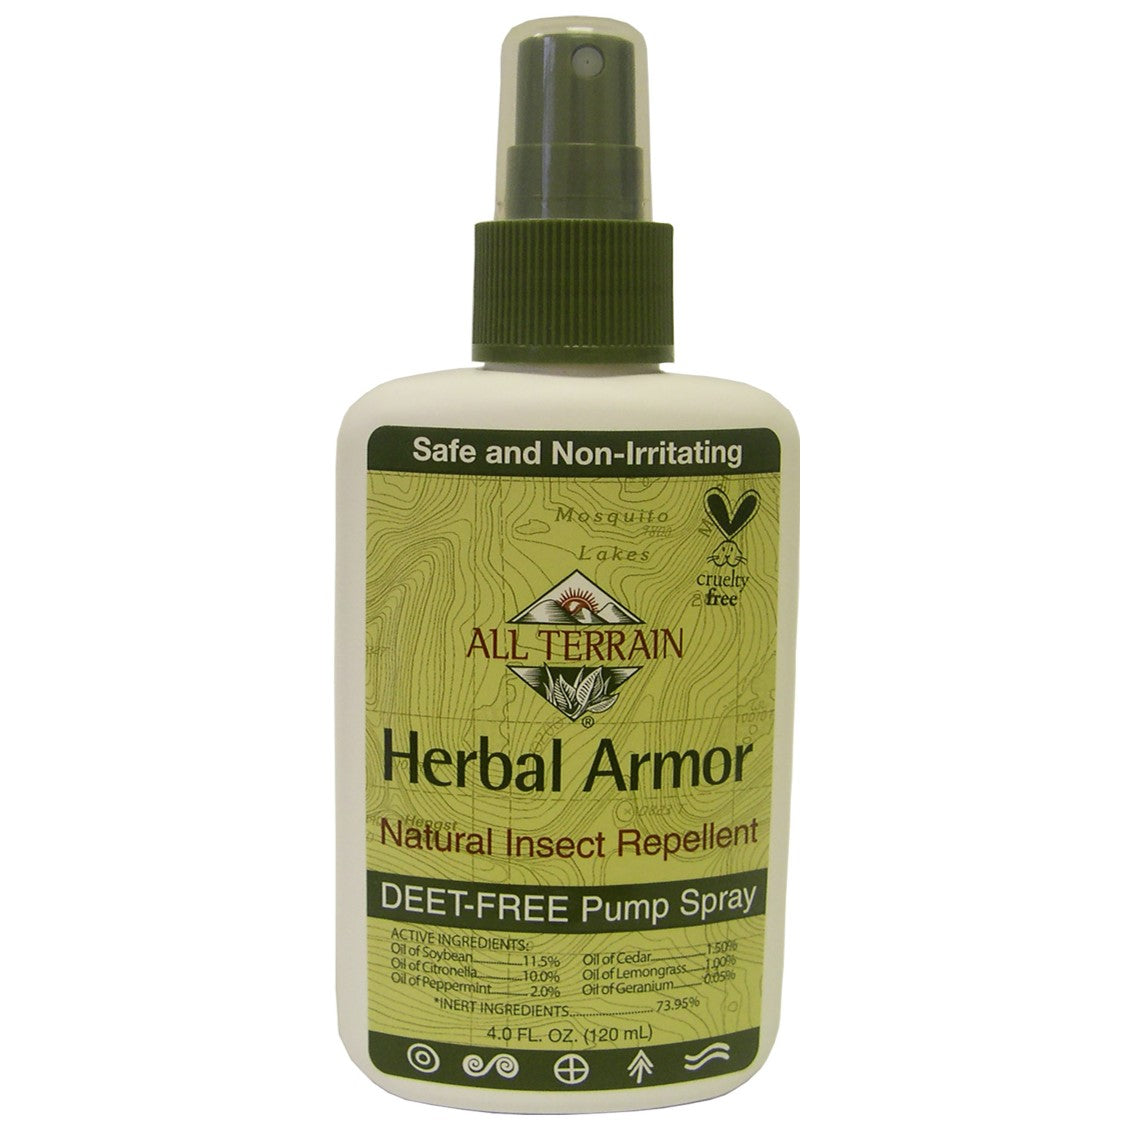 All Terrain Herbal Armor Spray, 120 ml.-NaturesWisdom